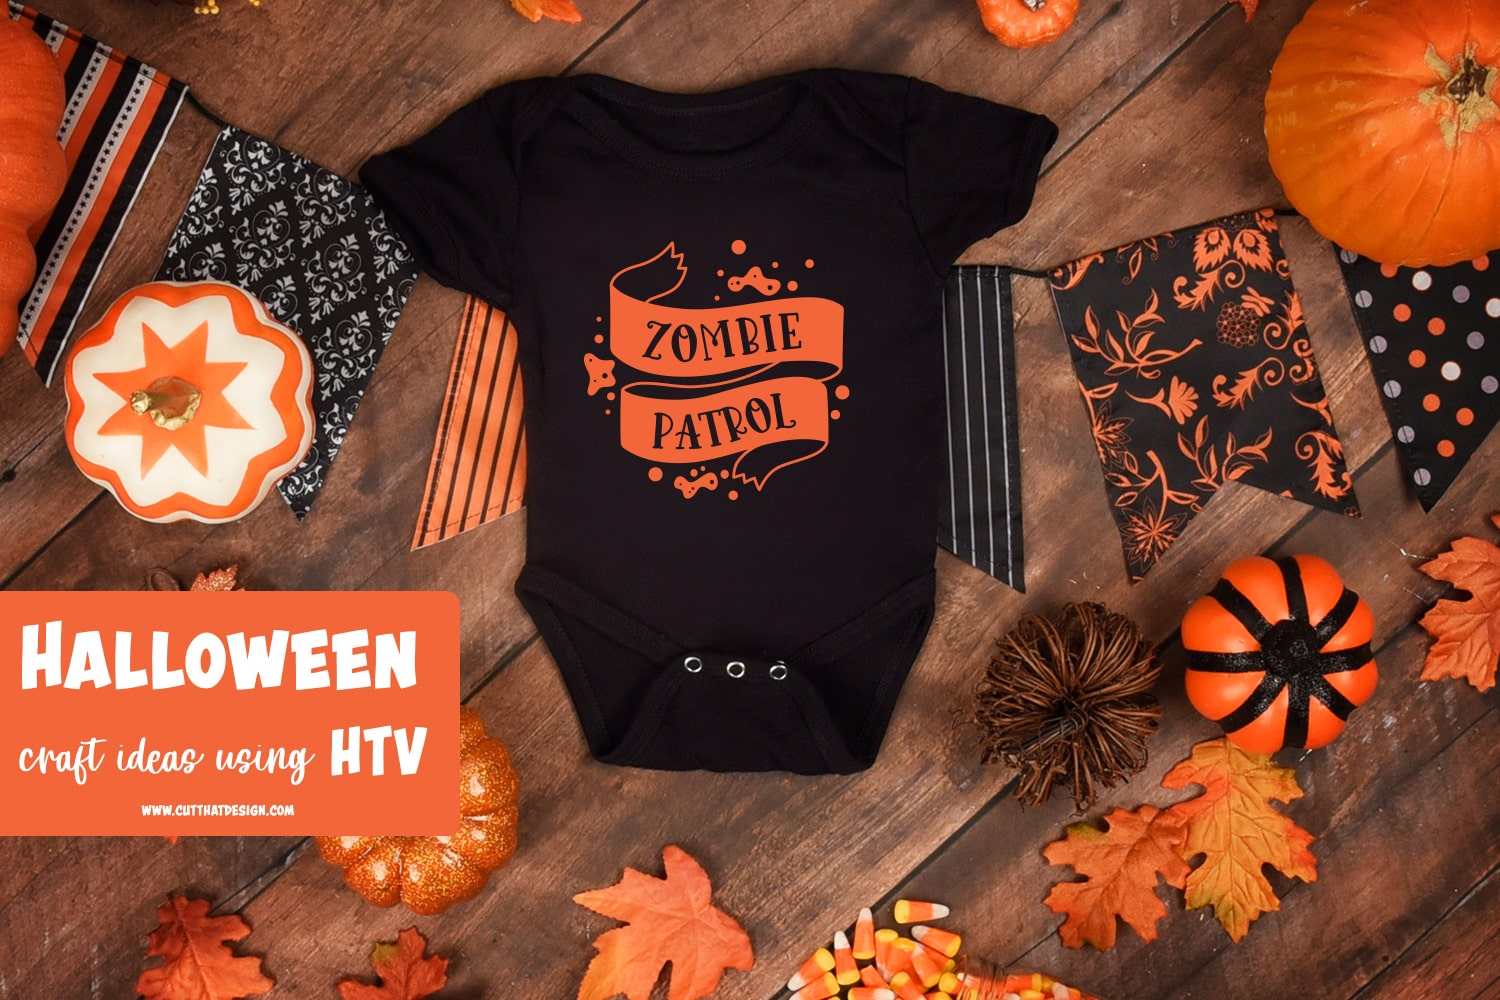 kids halloween htv ideas